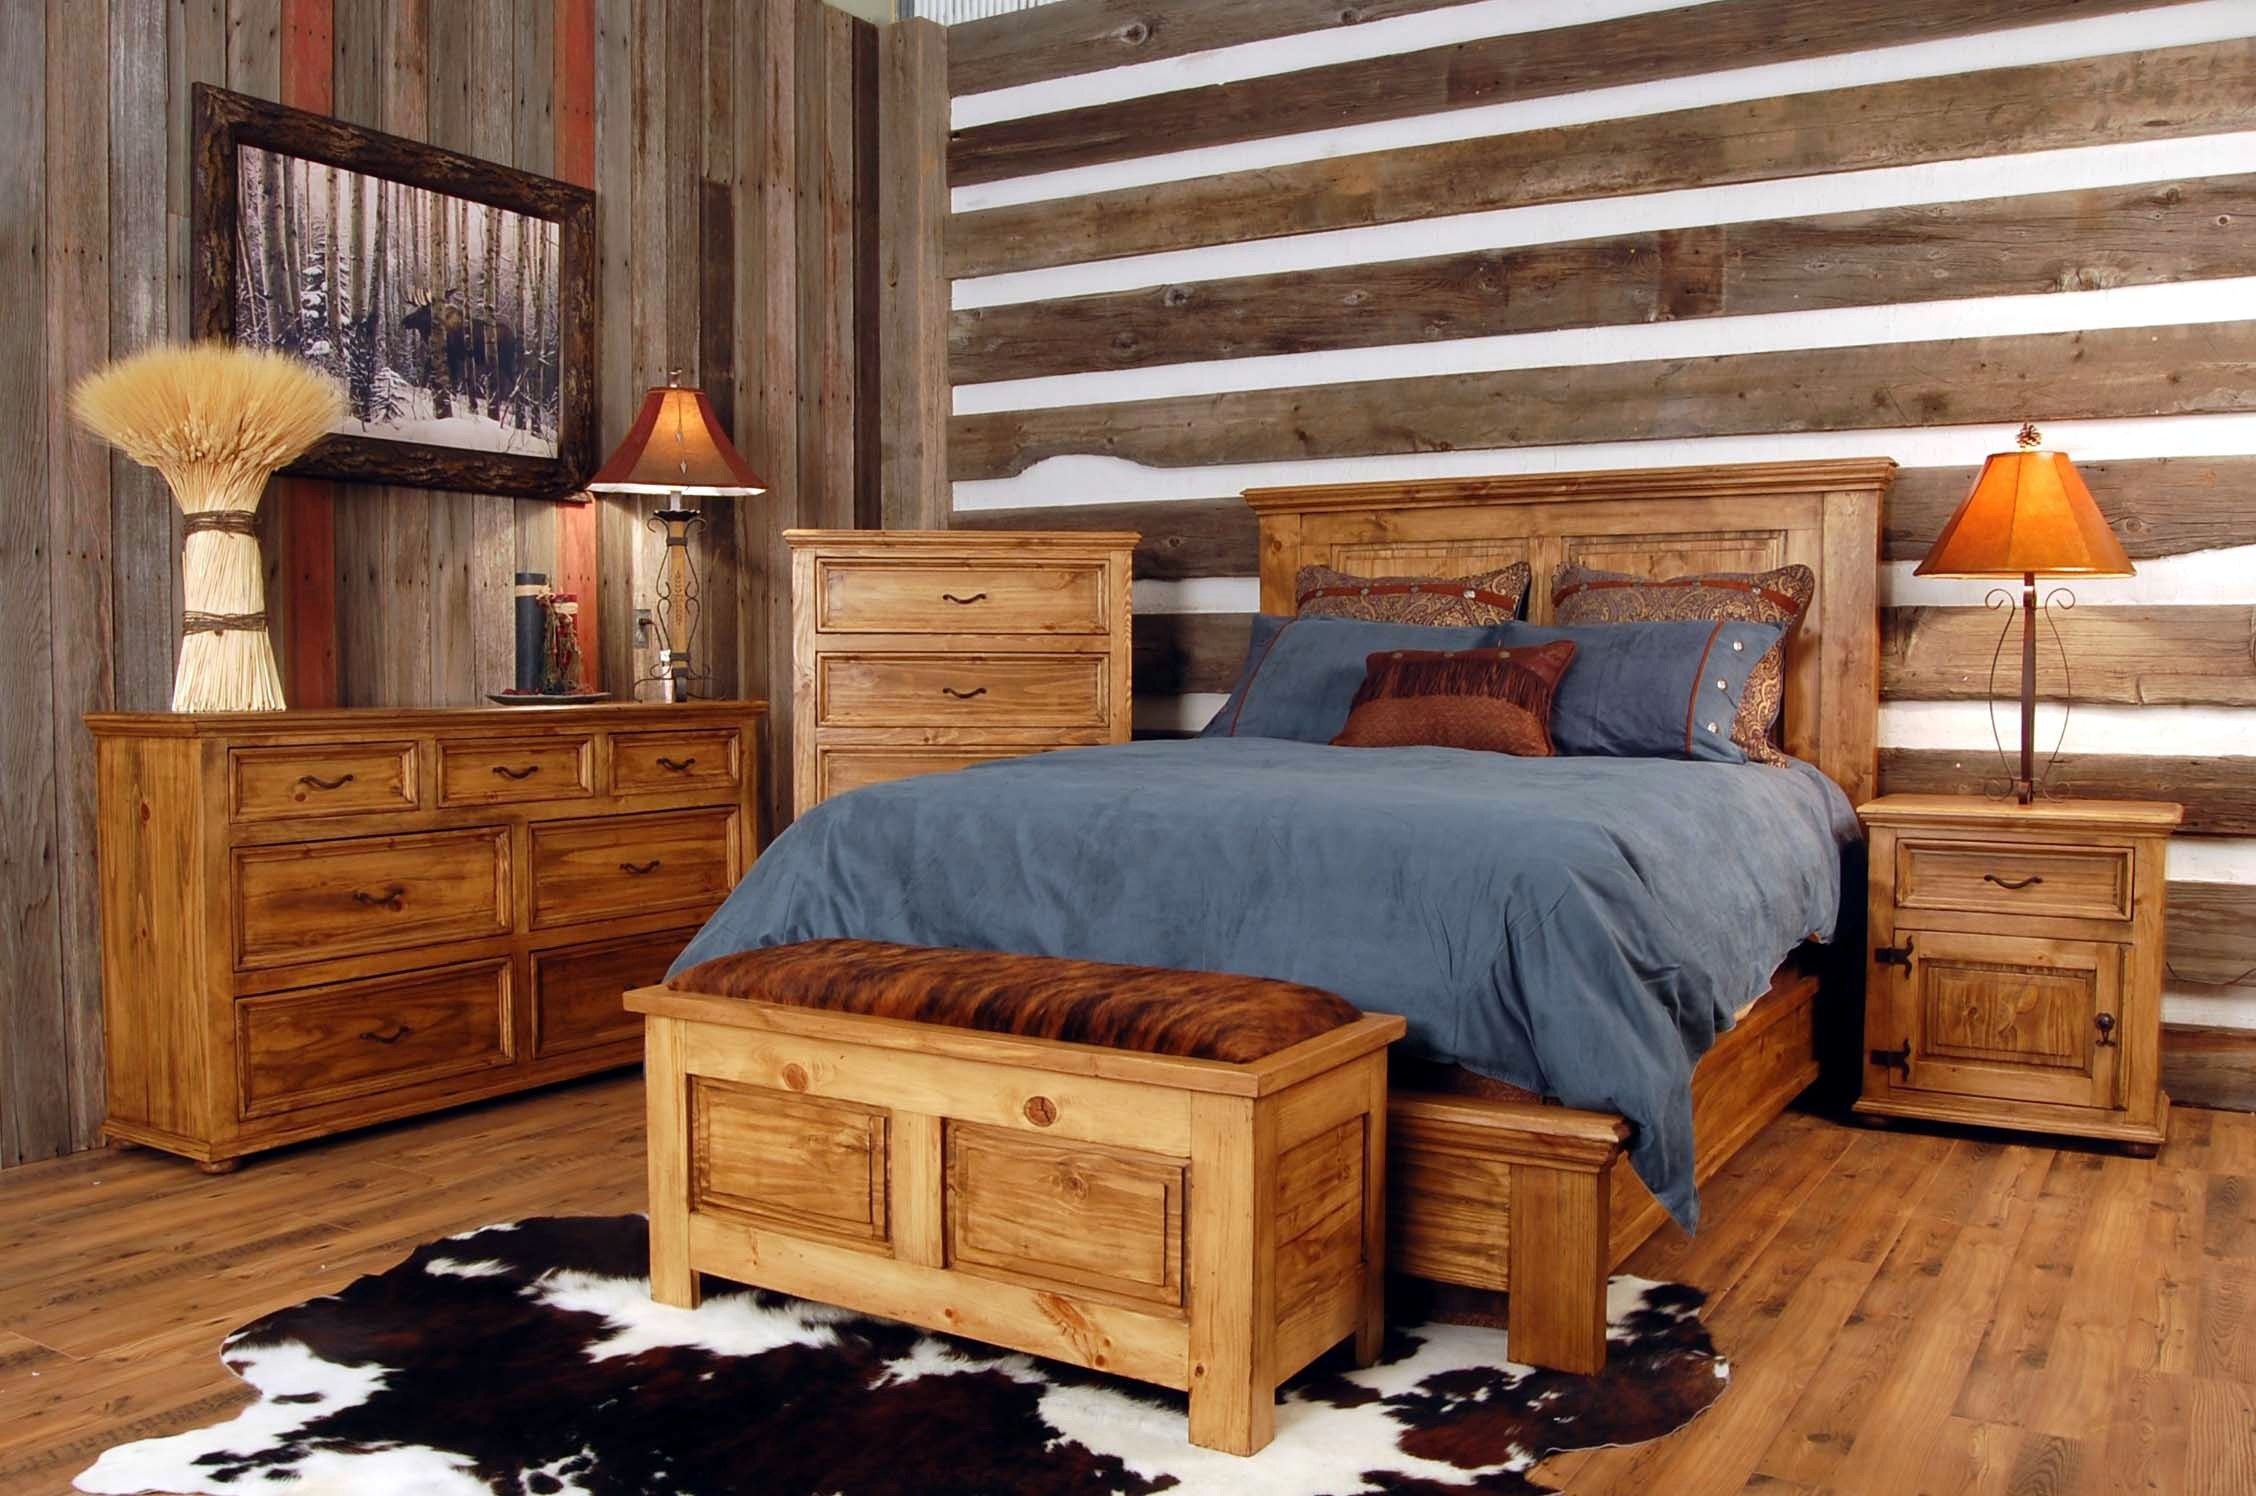 17 best images about rustic bedrooms on pinterest   shops, antigua